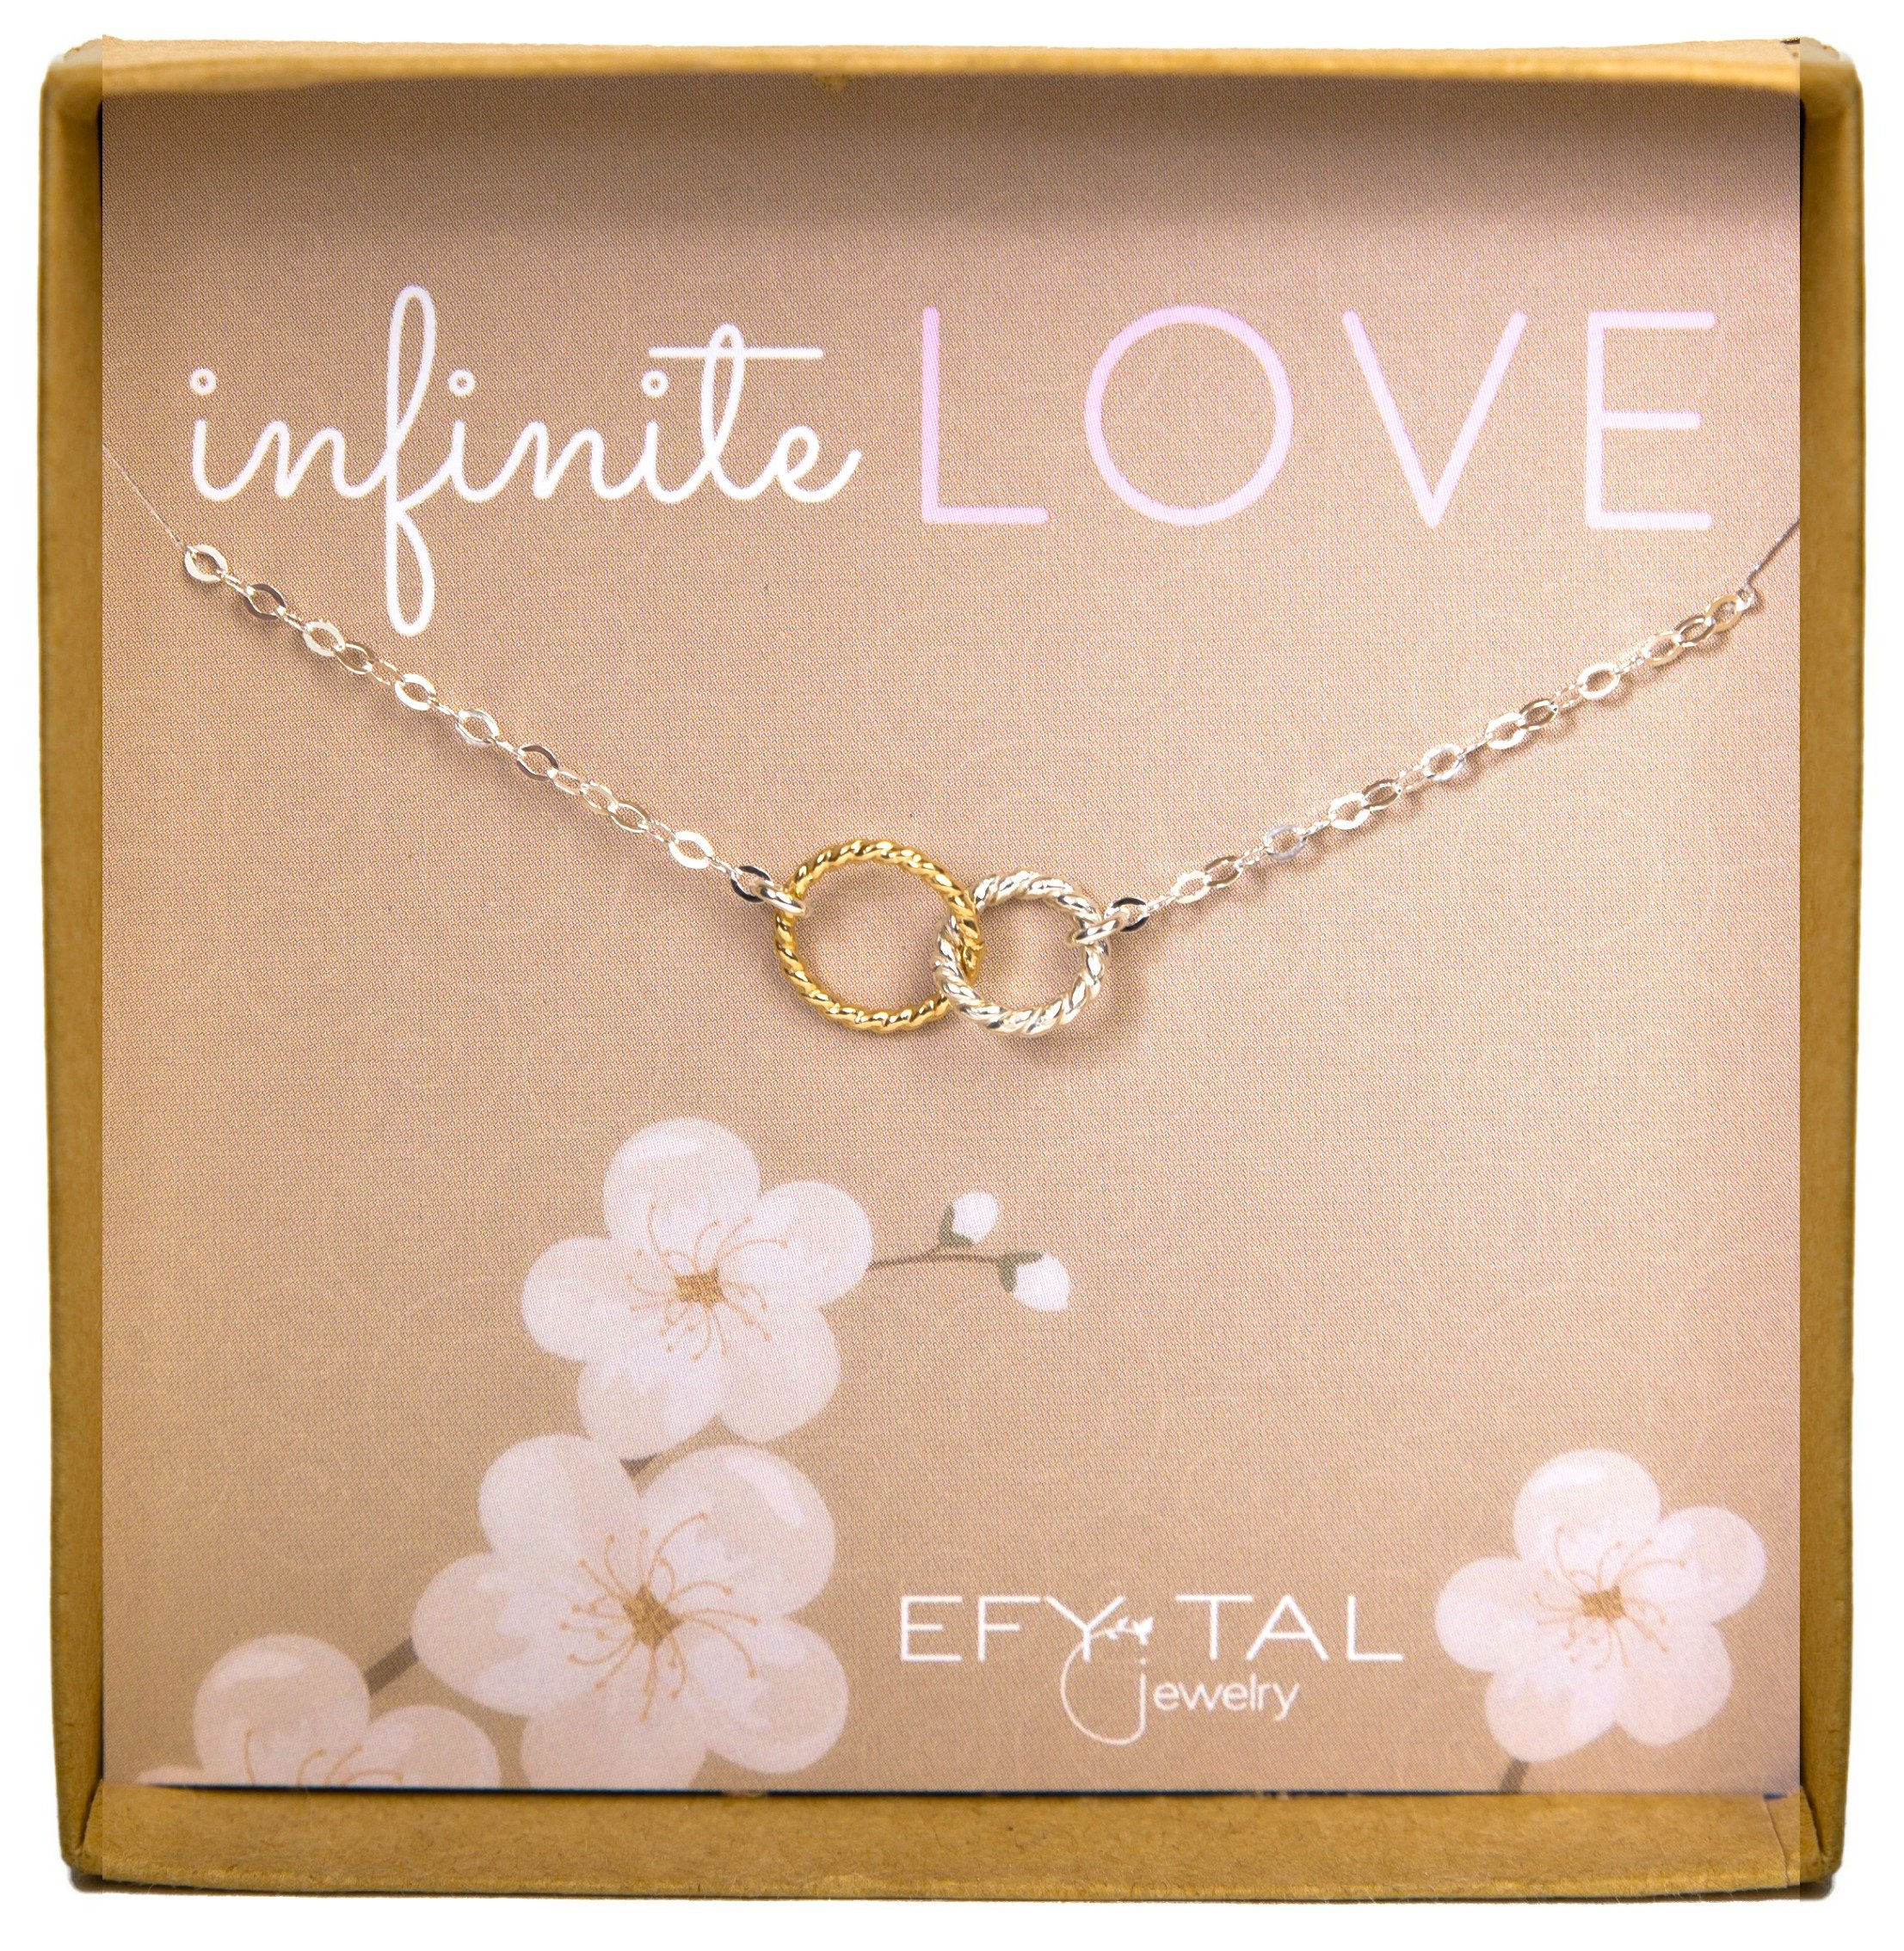 Efy Tal Jewelry Infinity Necklace, Two Tone Interlocking Circles in Sterling Silver and Gold Filled, Infinite Love